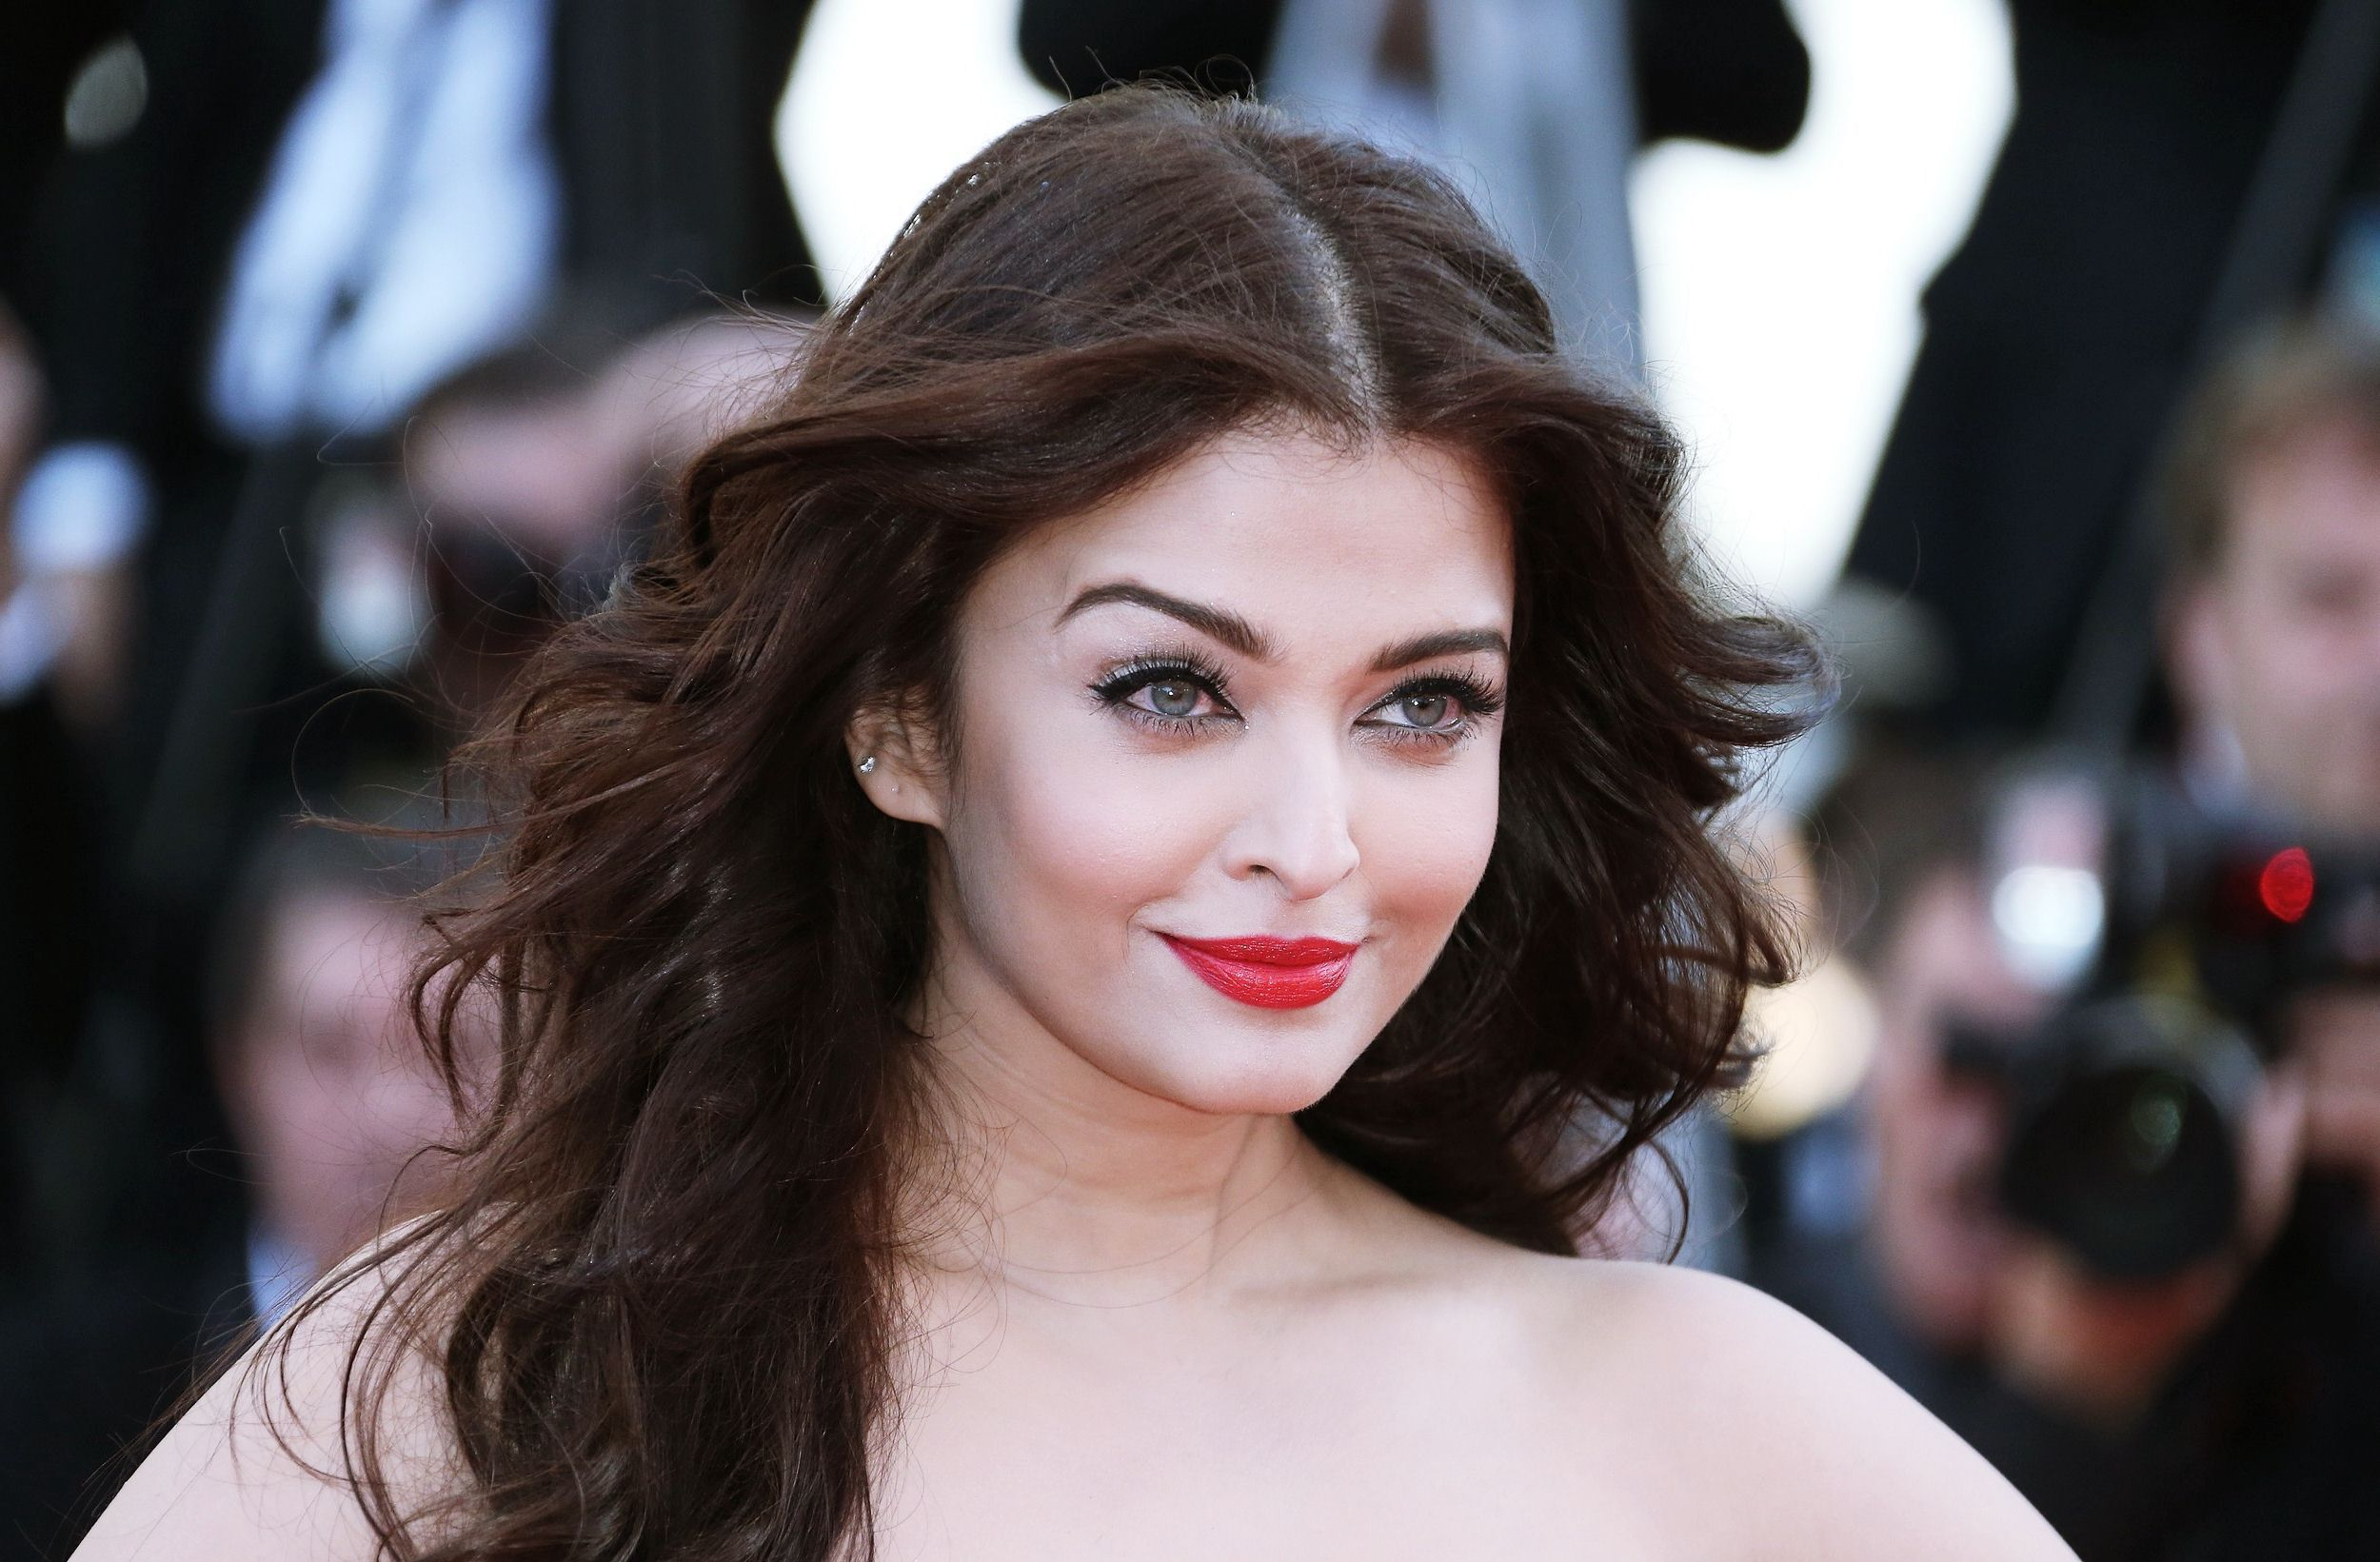 Aishwarya Rai Bachchan Wallpapers HD